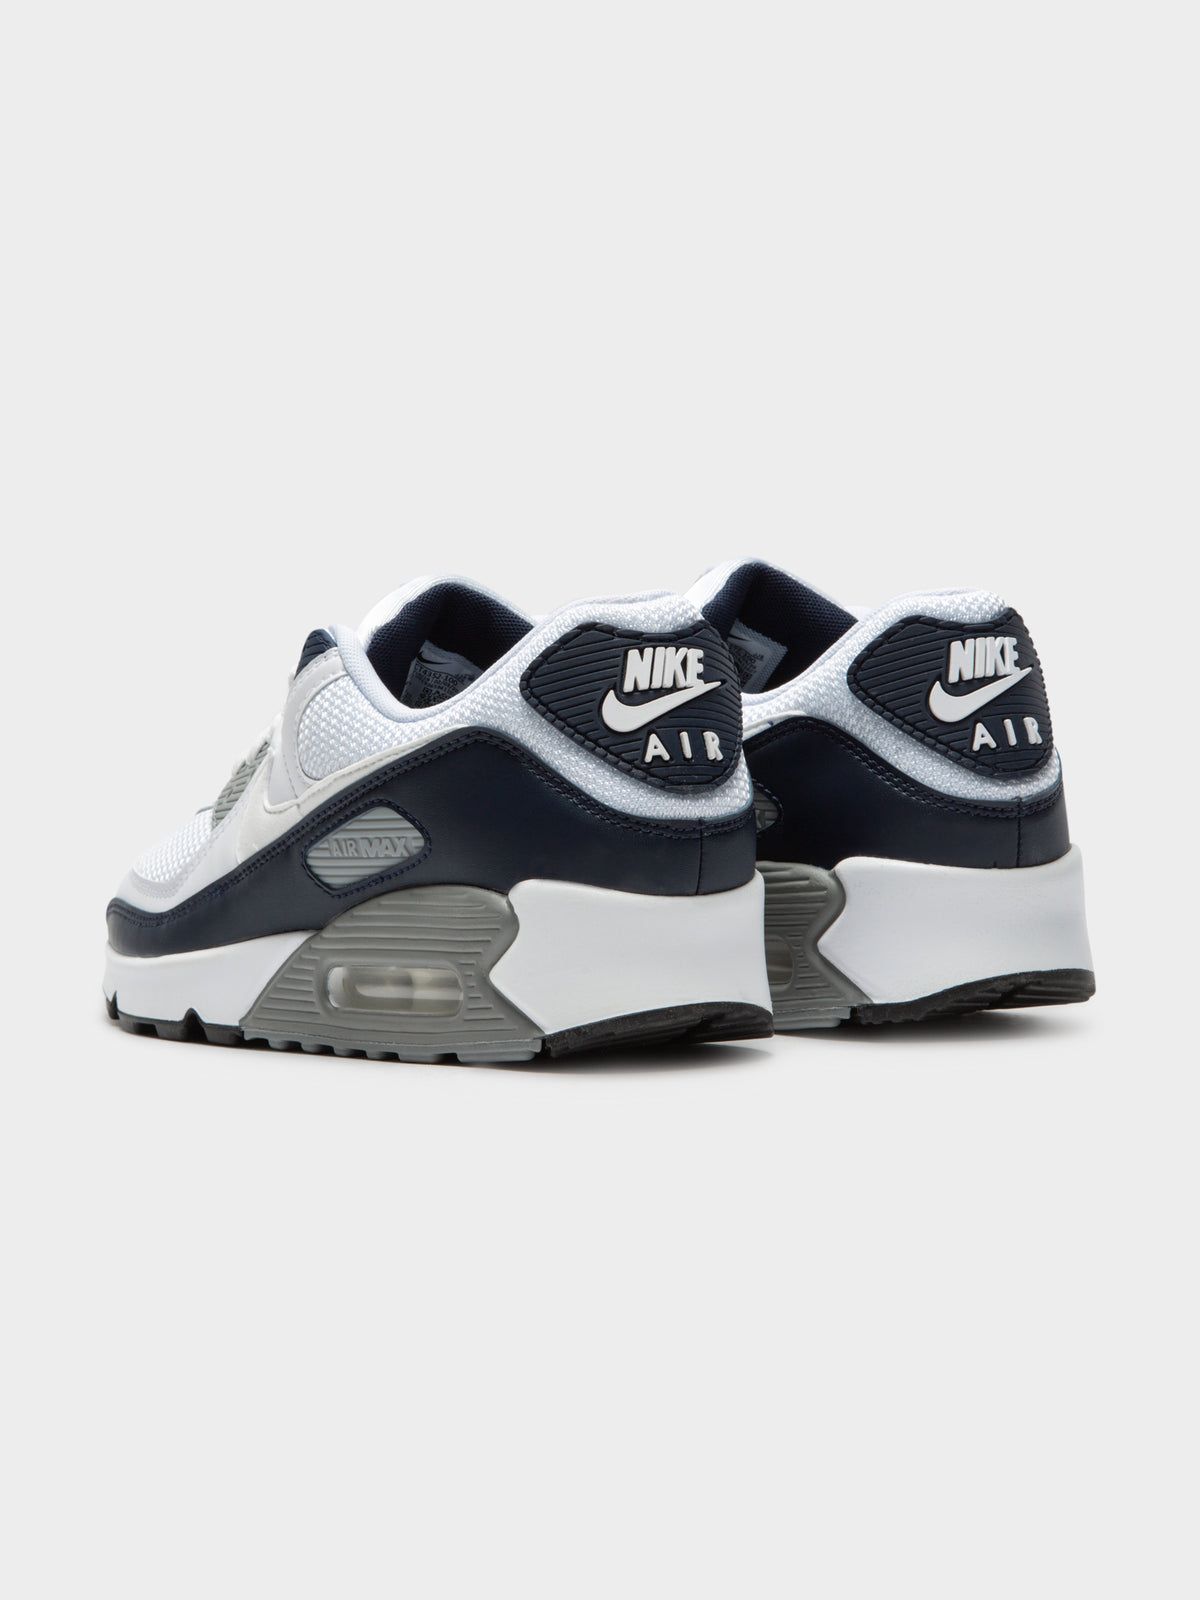 Mens Air Max 90 Sneakers in White Grey & Black